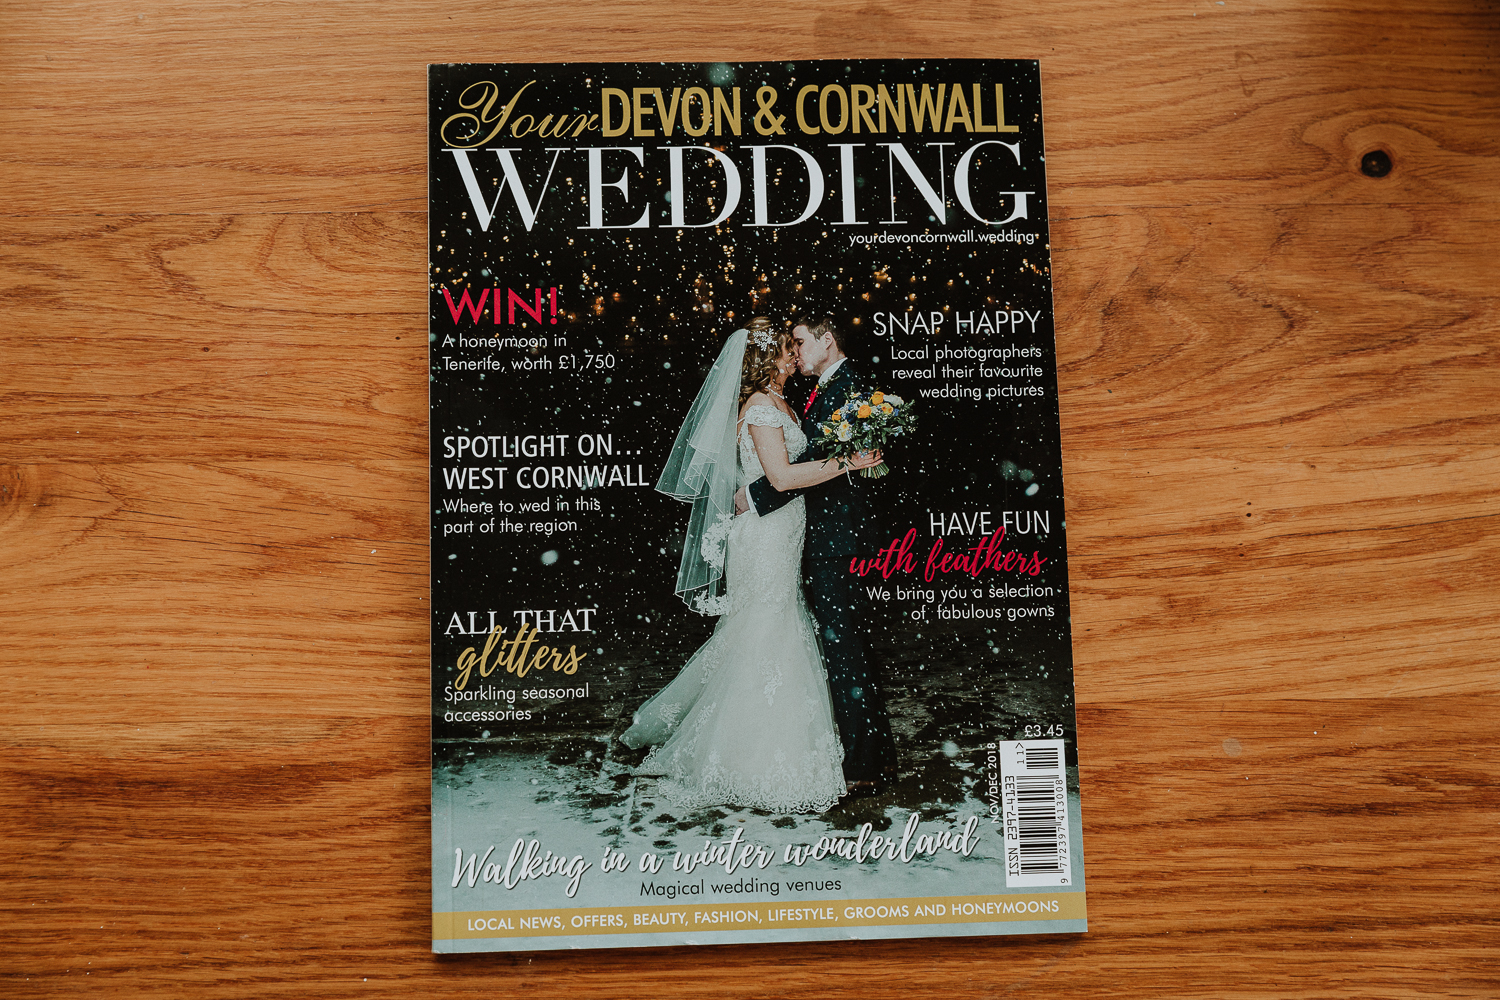 Cornwall_Devon_wedding_covershot_1.jpg